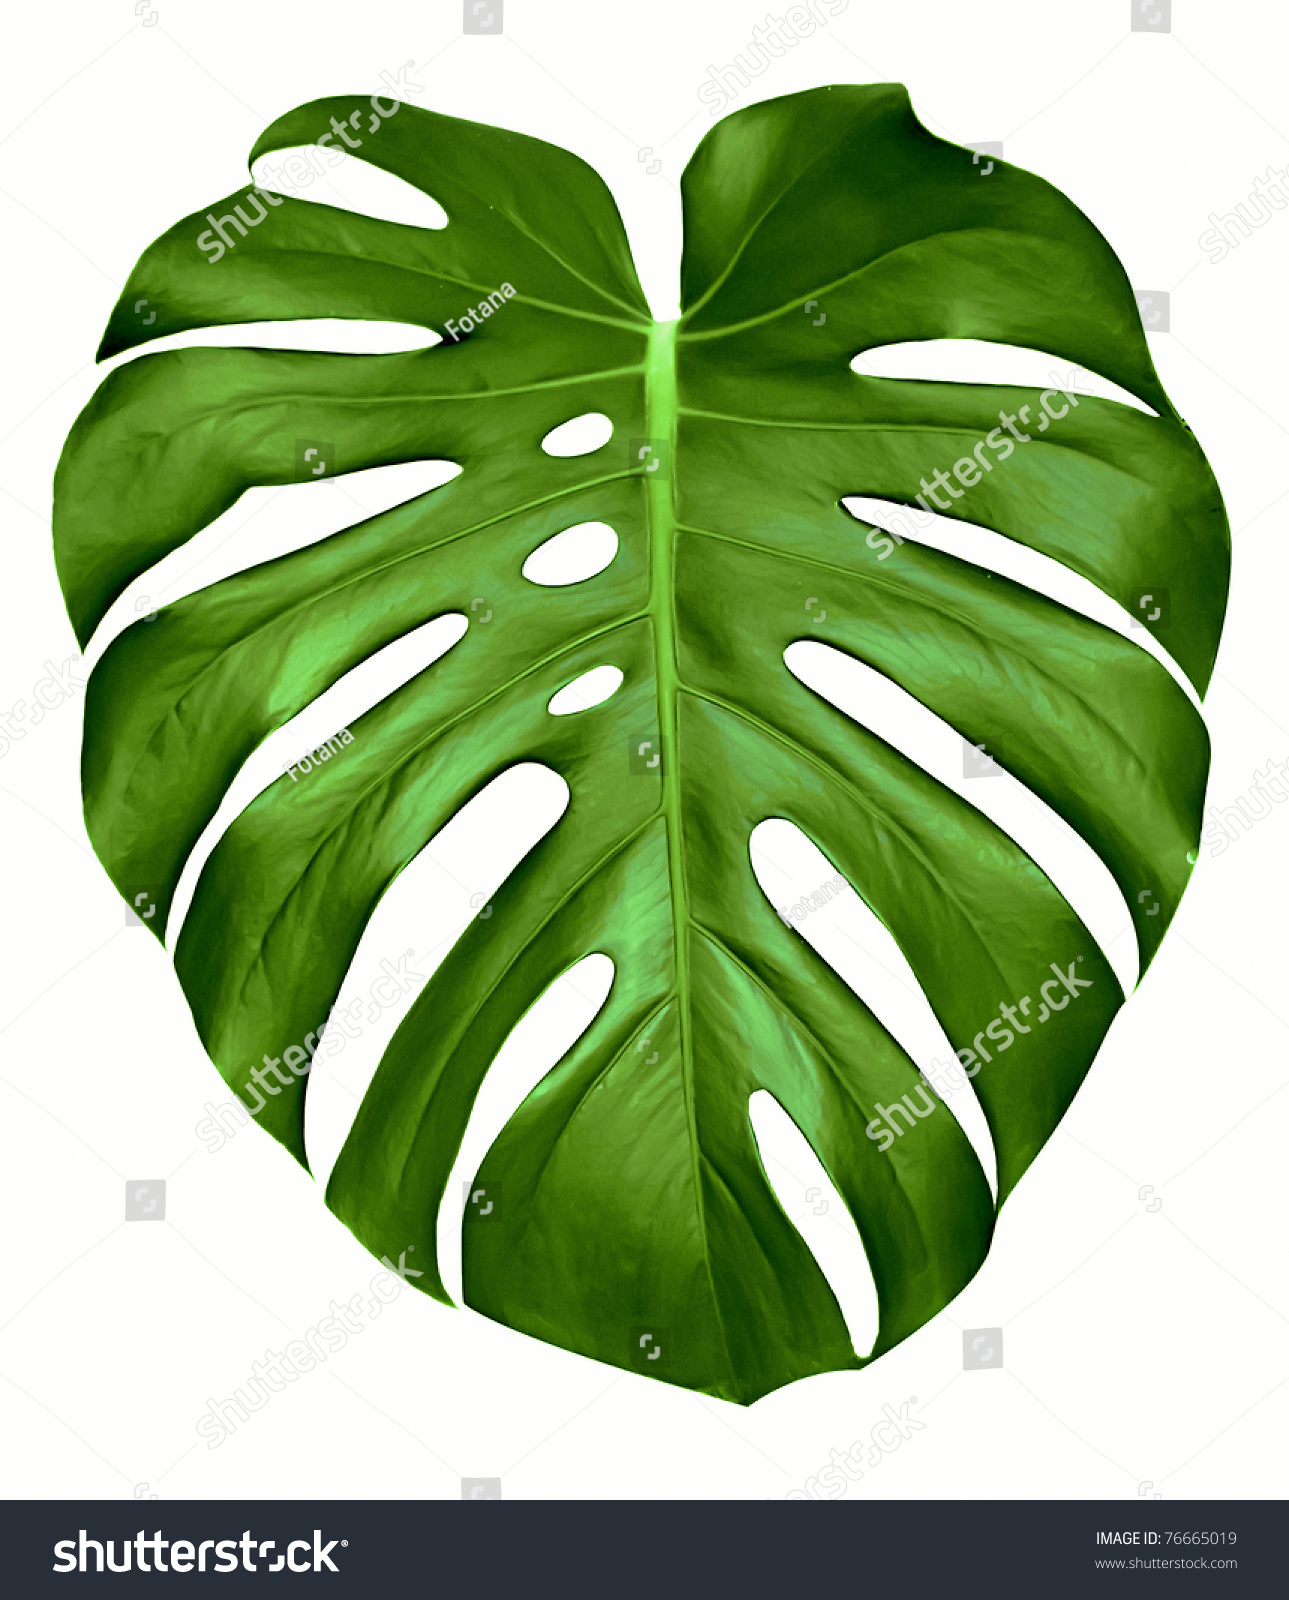 Big Green Egg Outdoor Kitchen: Big Green Leaf Monstera Plant Isolated Stock Photo